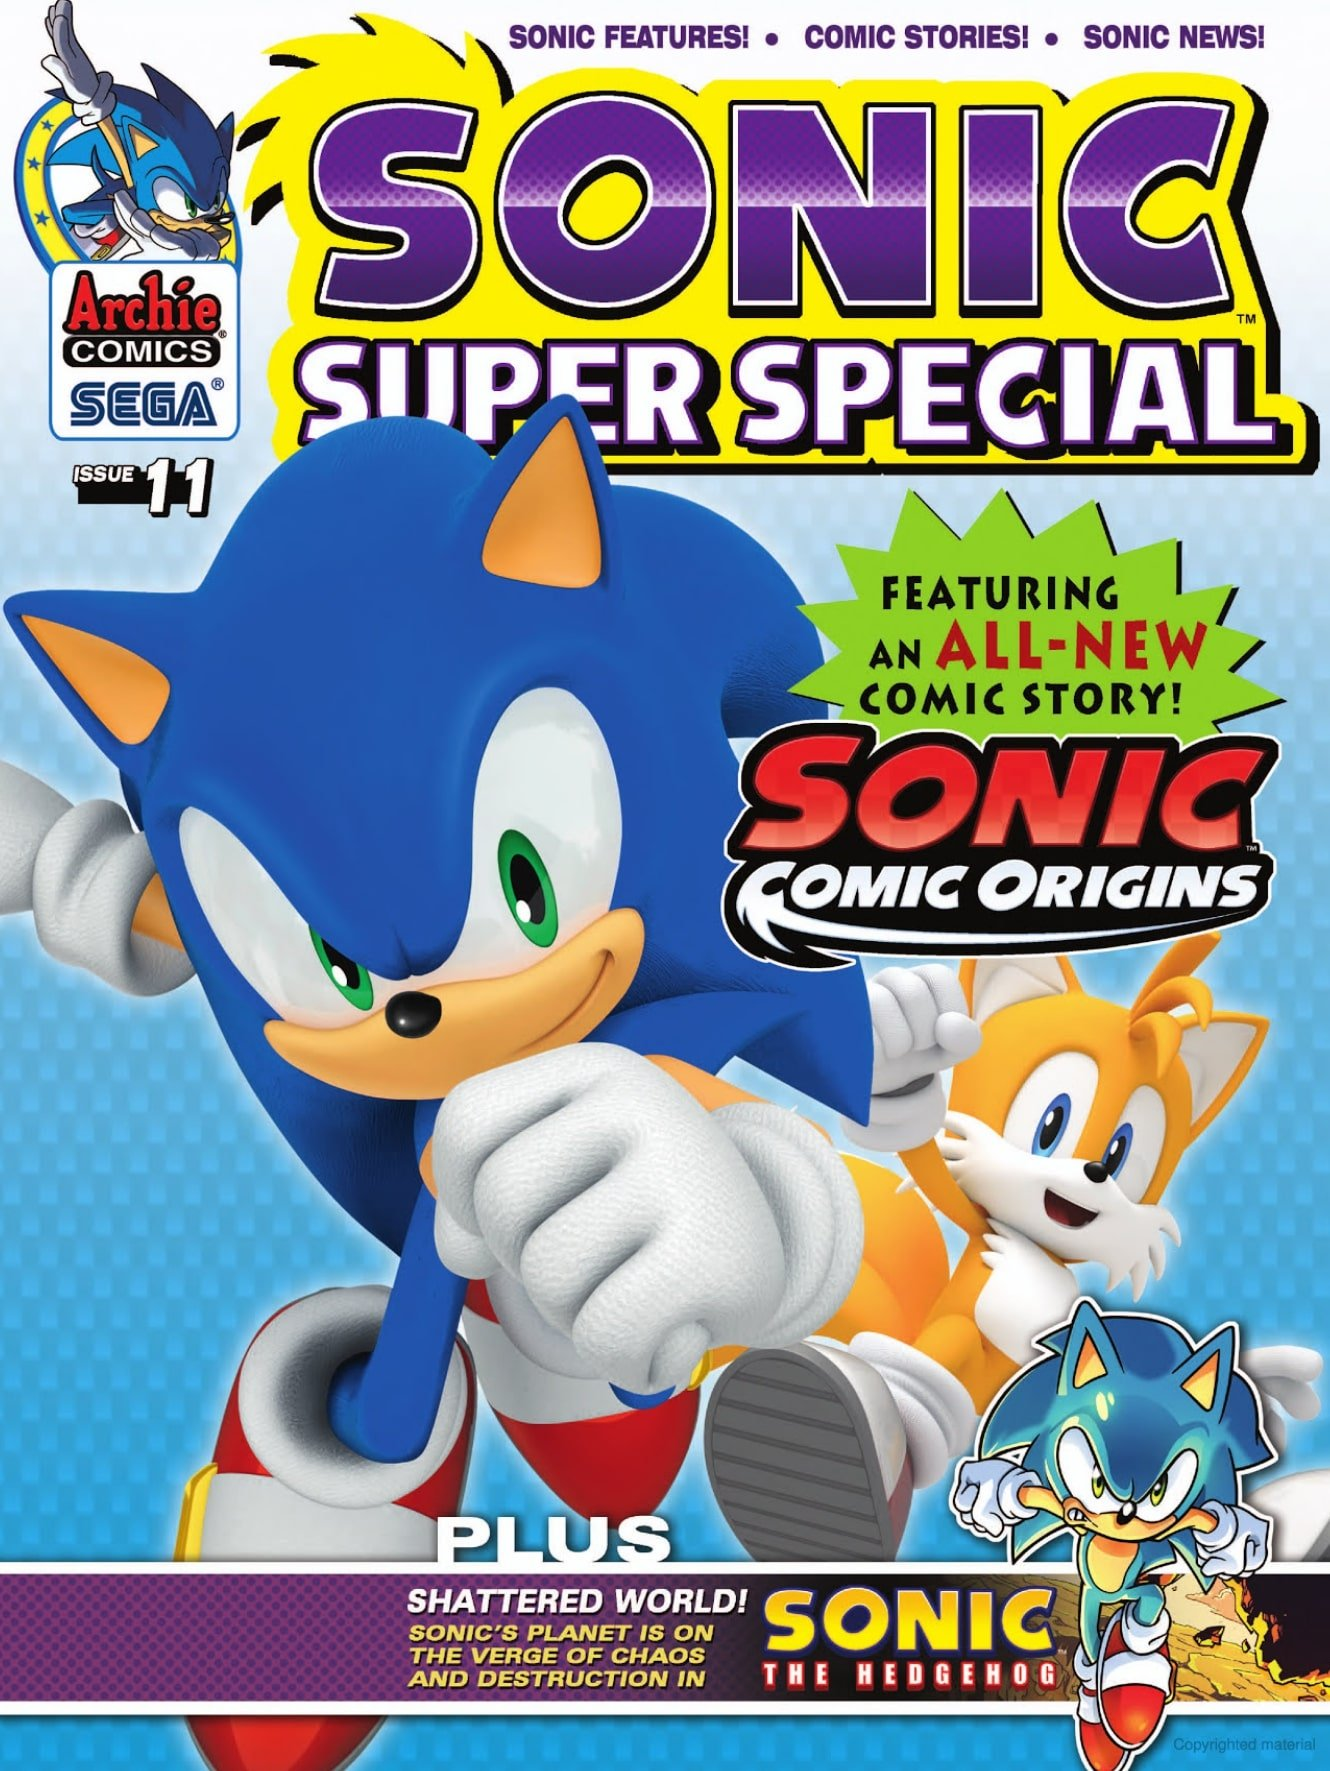 Sonic Super Special Magazine 11 (May 2014)